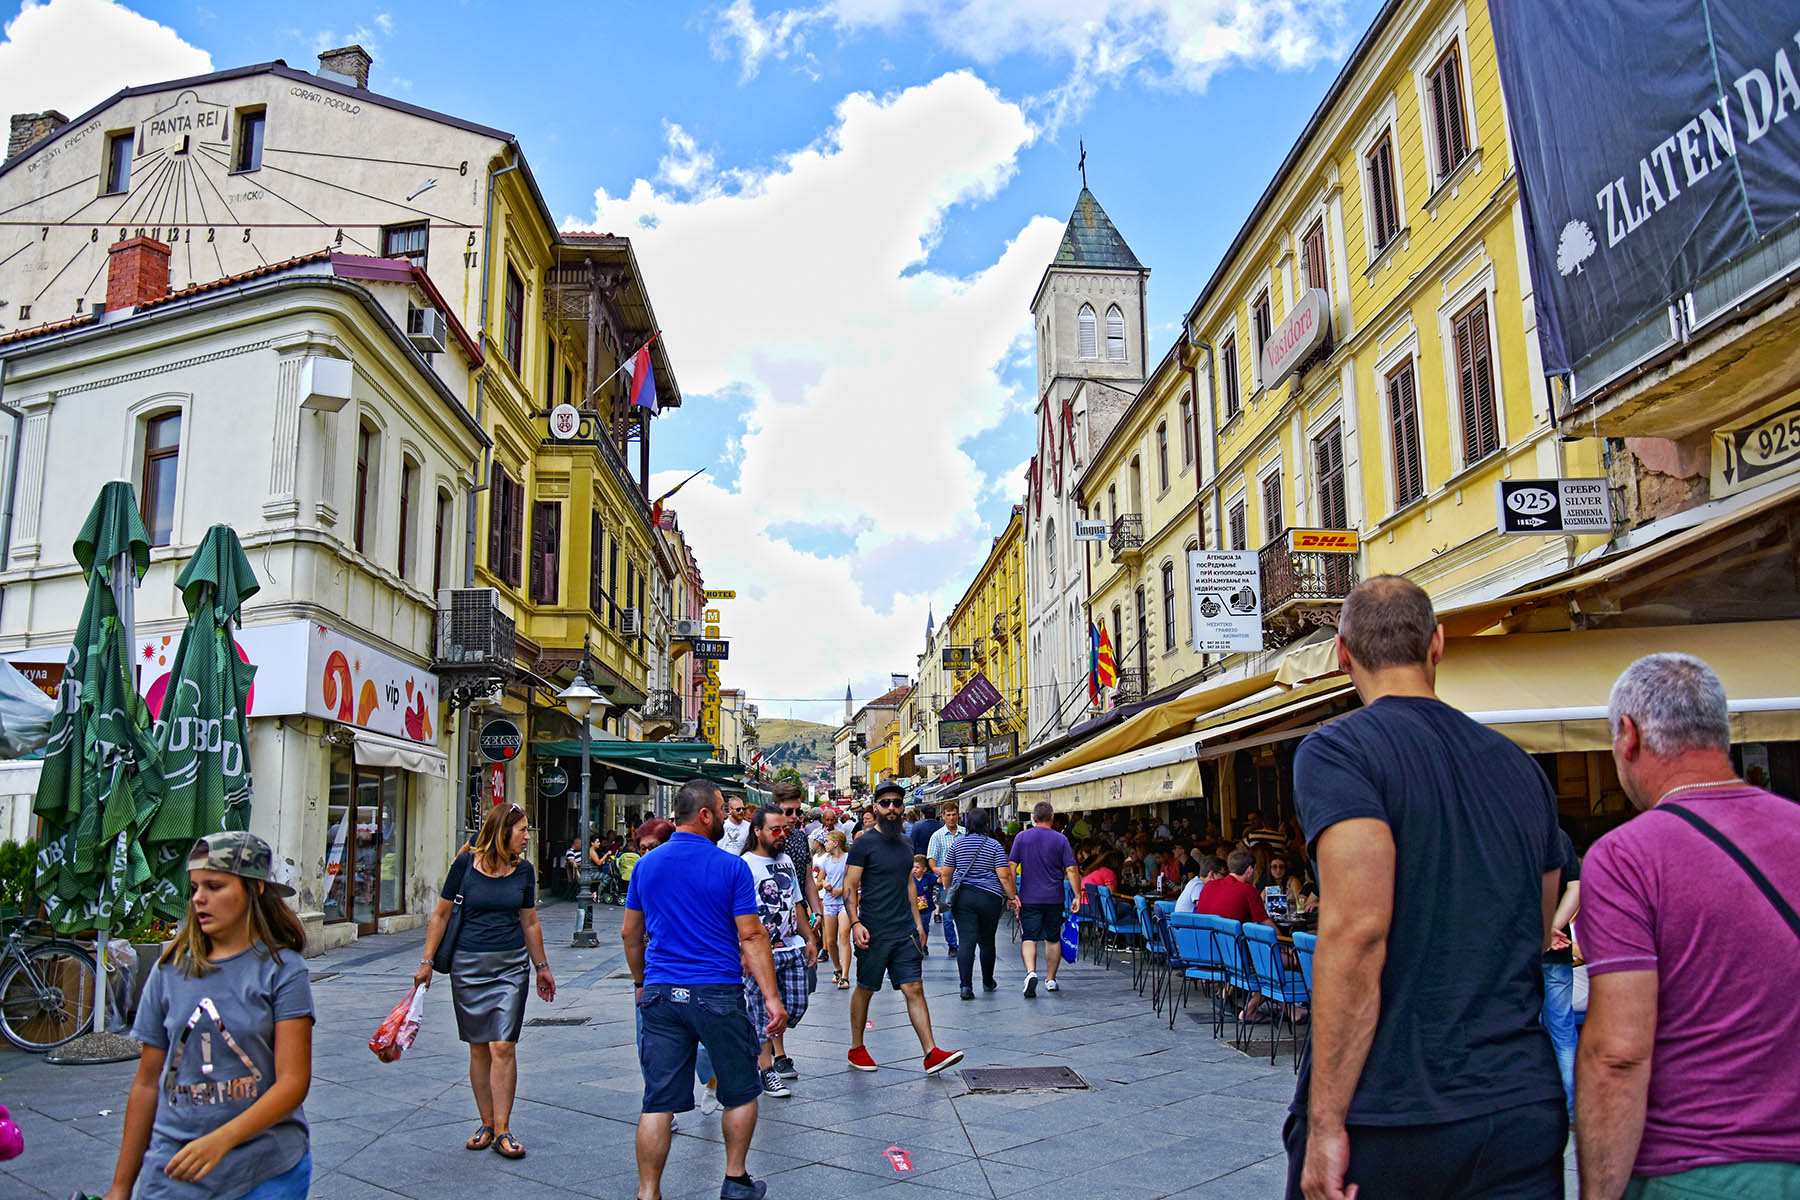 Pedestrian street in Bitola full with people walking and drinking coffee